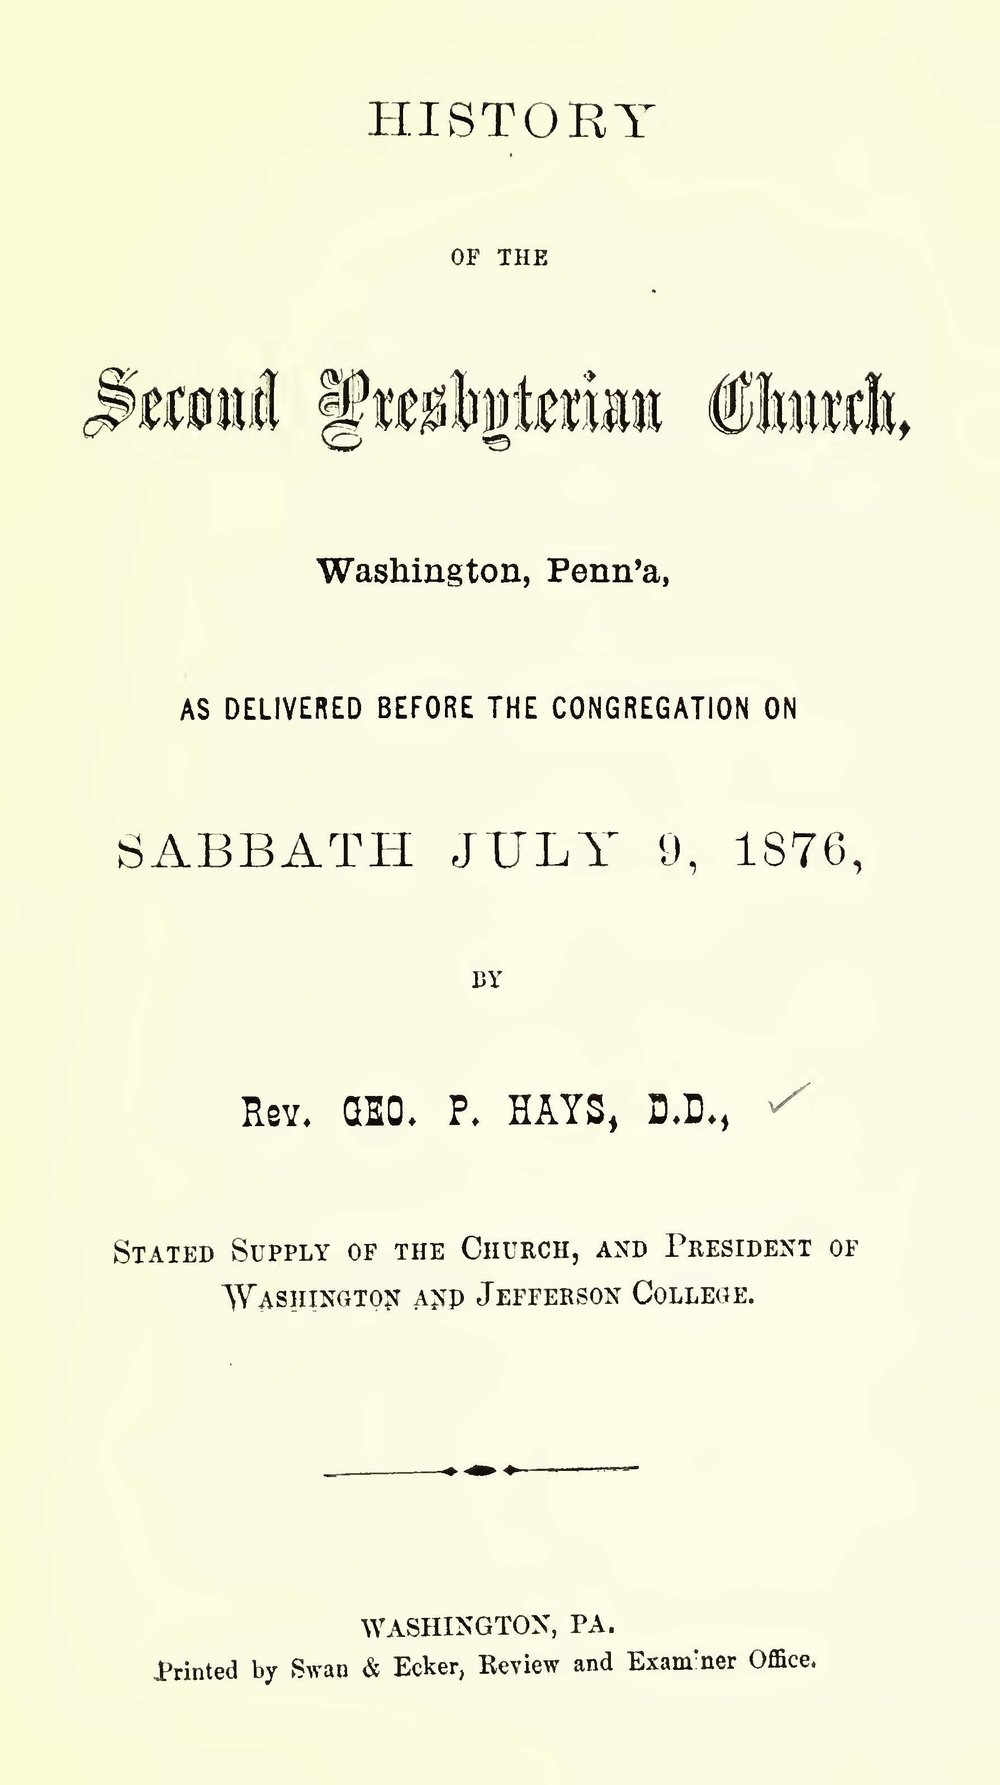 Hays, George Price, History of the Second Presbyterian Church Washington Penna Title Page.jpg